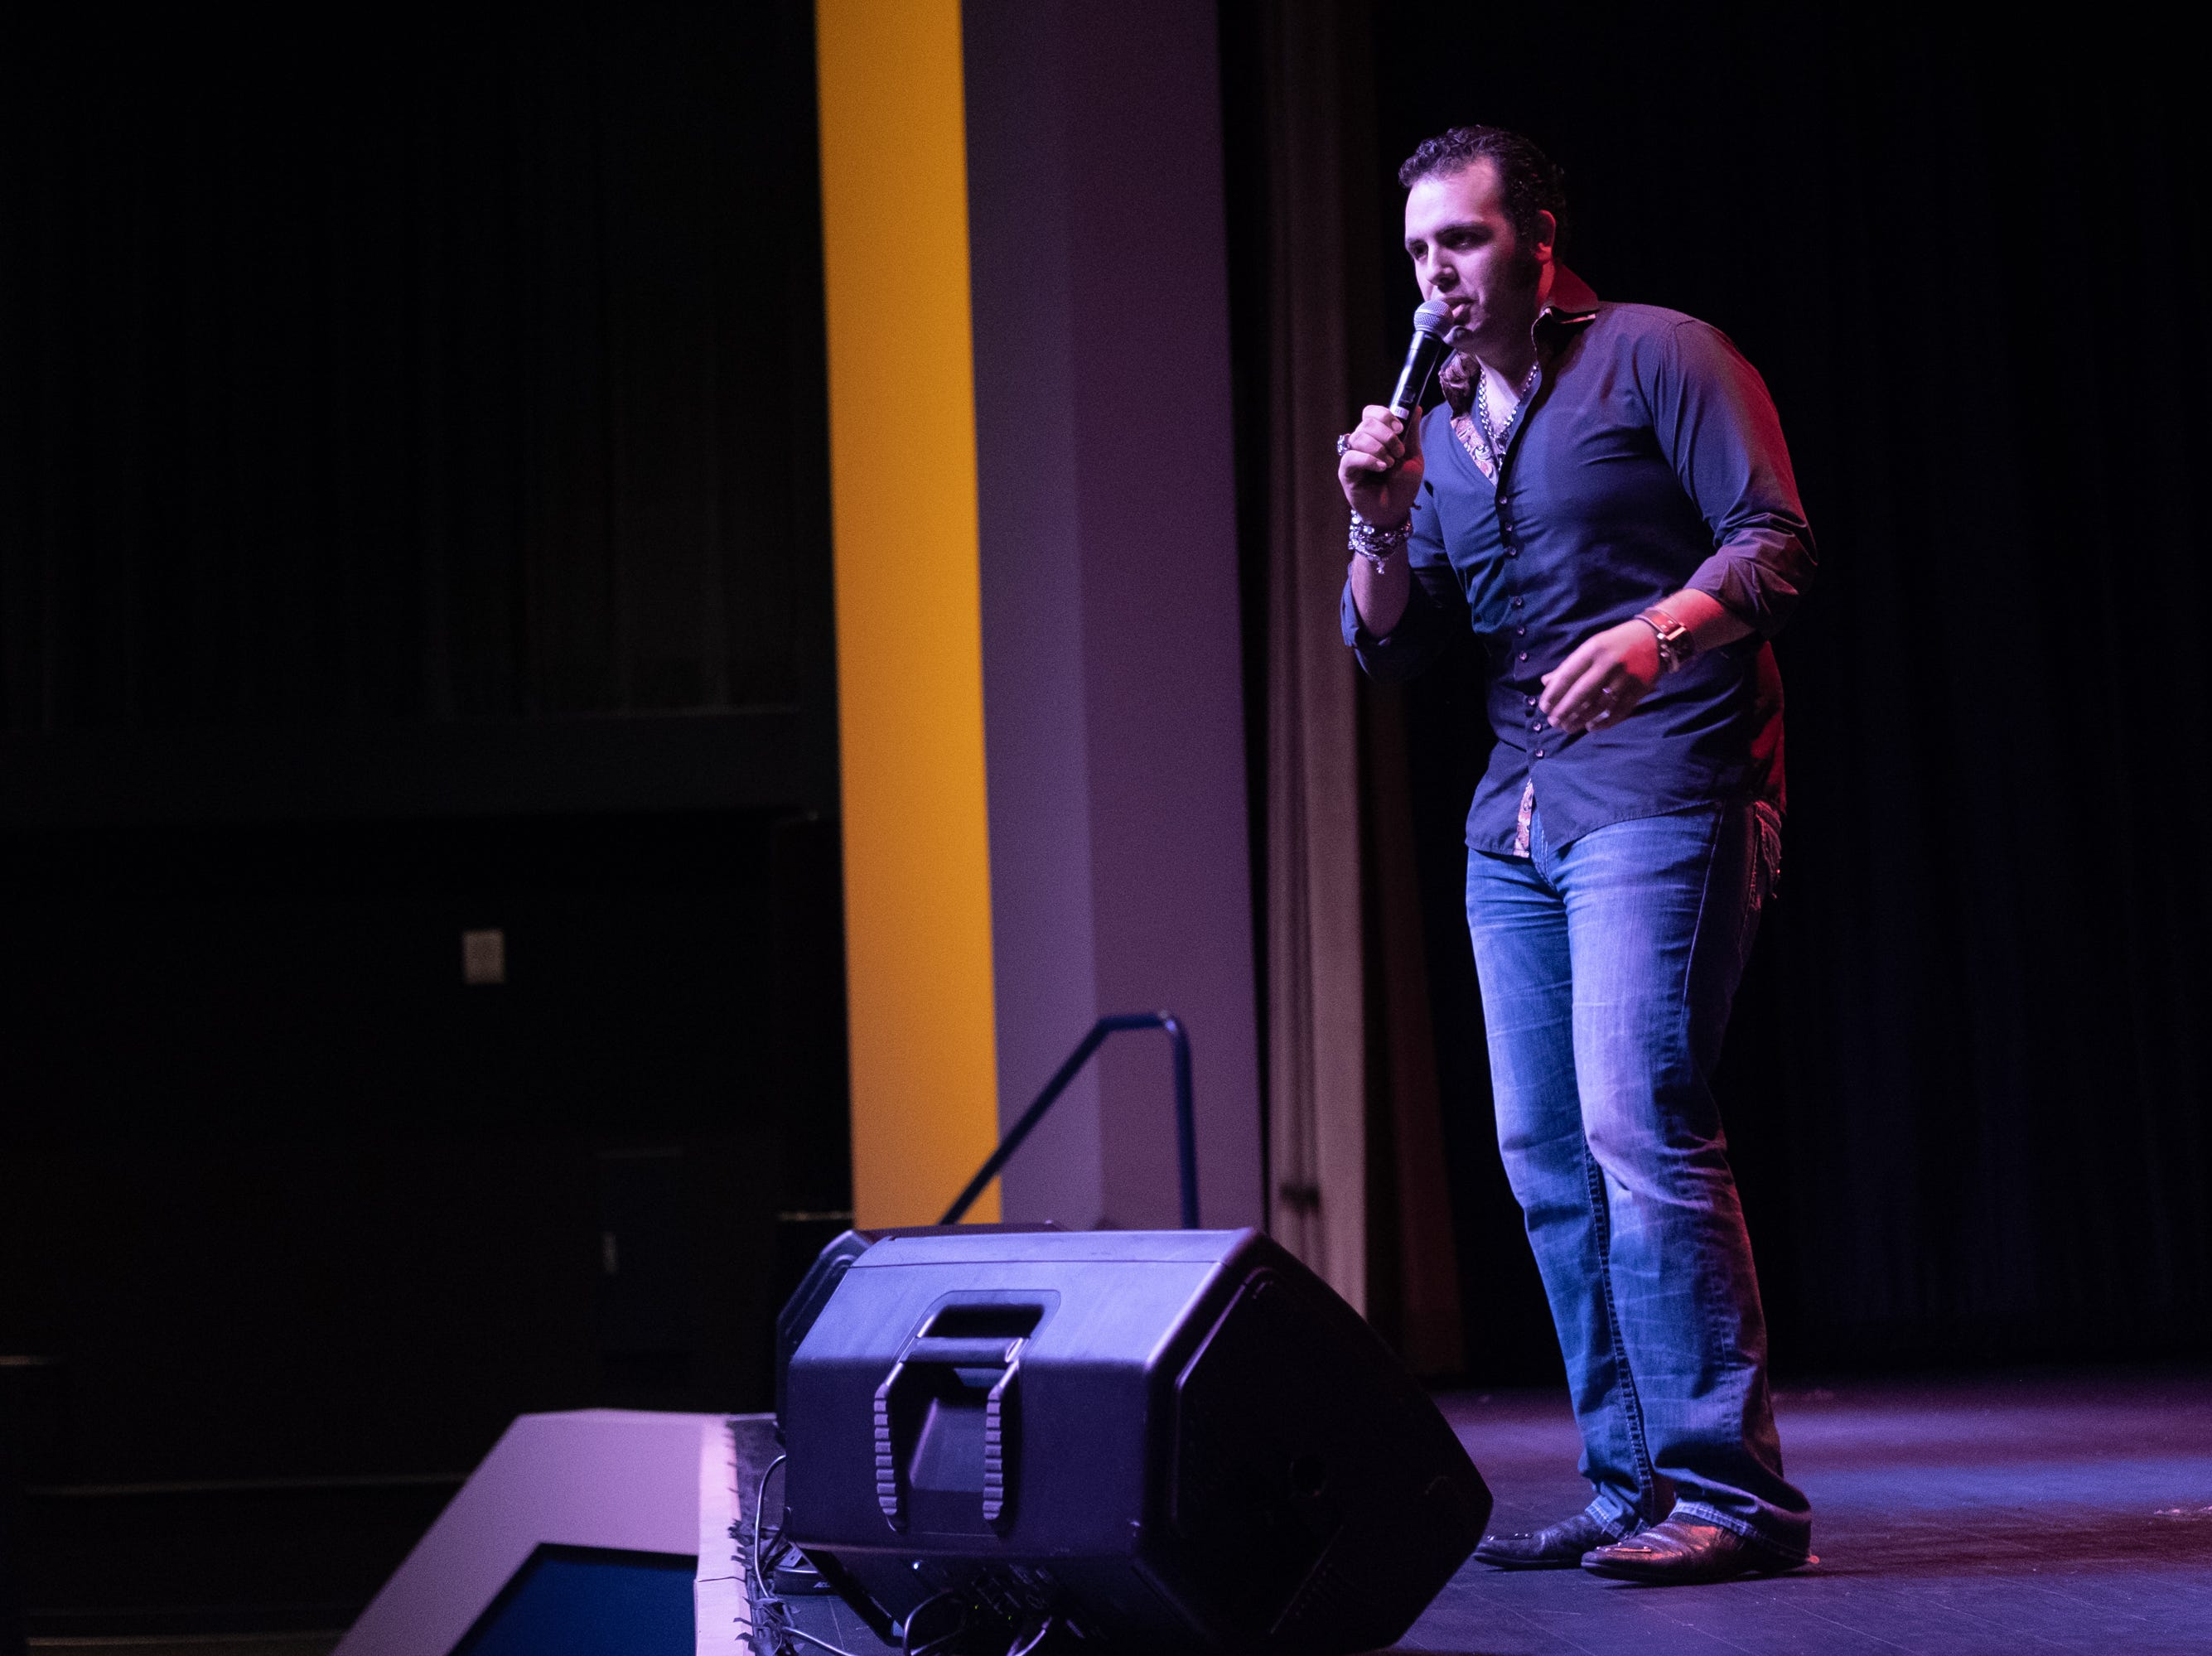 """Bruno Nesdhi, who won Tweed's Tribute to Elvis, performs """"You Don't Have to Say You Love Me."""""""